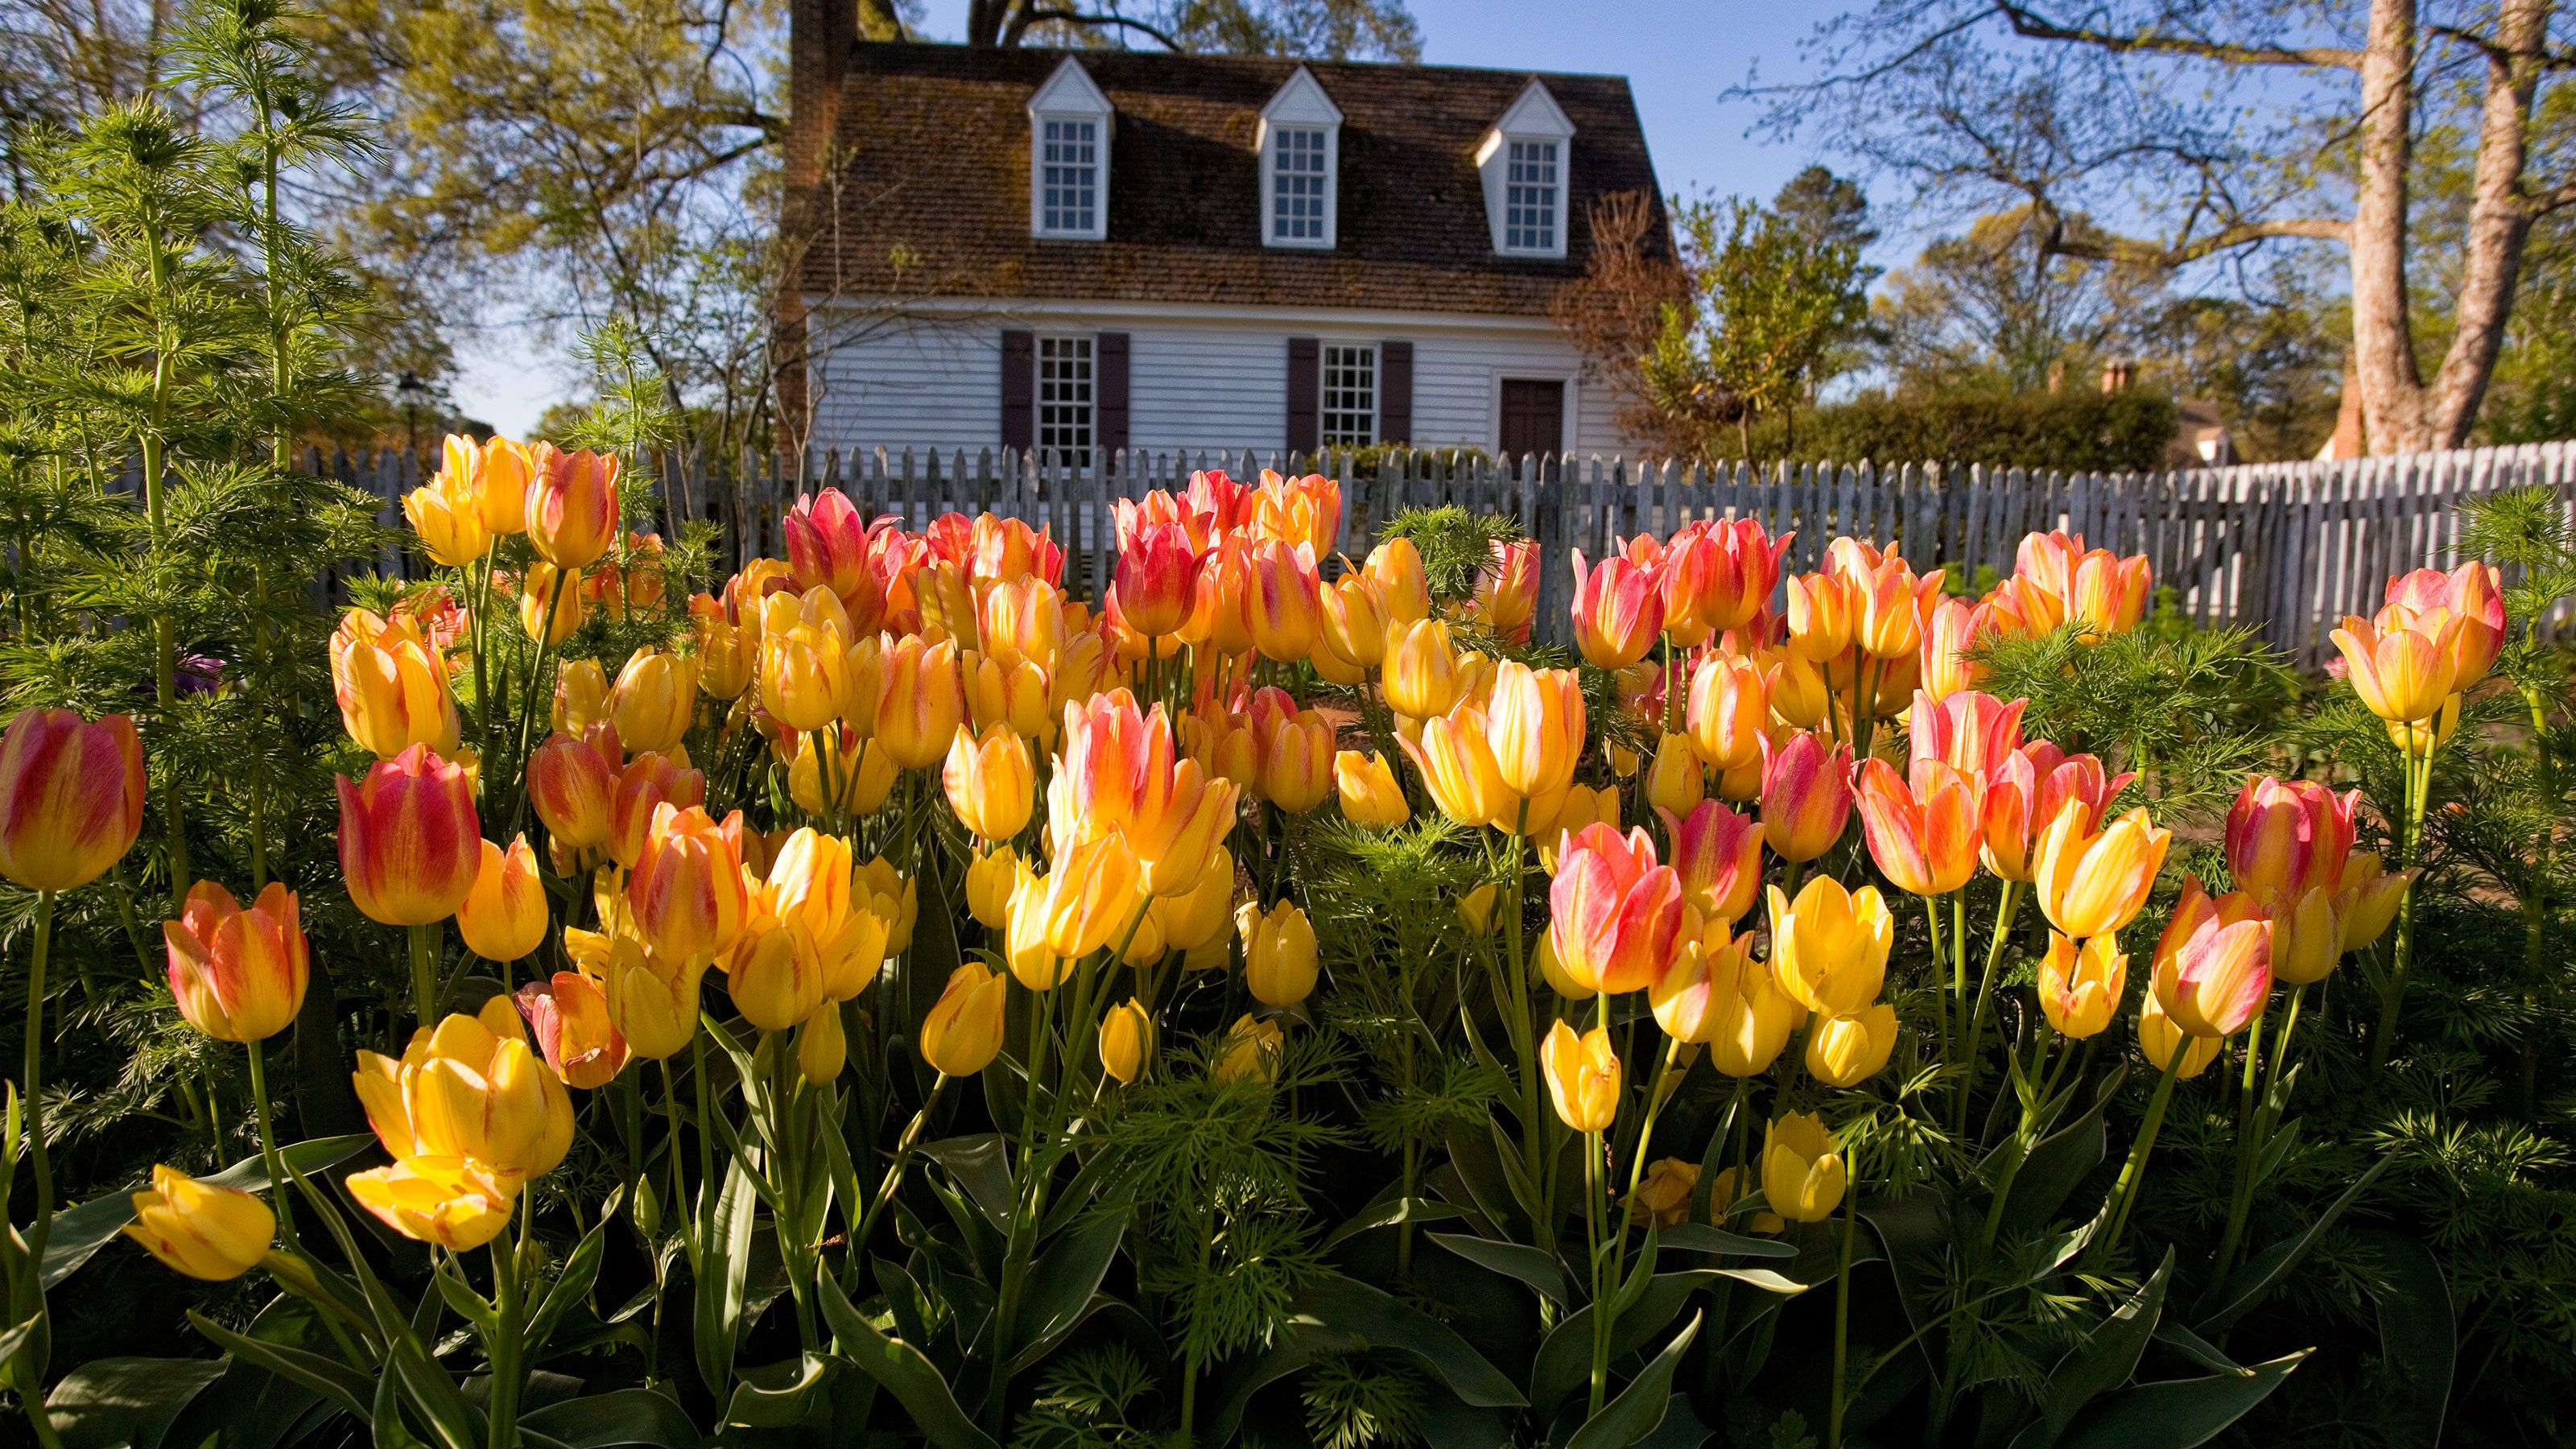 Colonial Williamsburg: The Revolutionary City